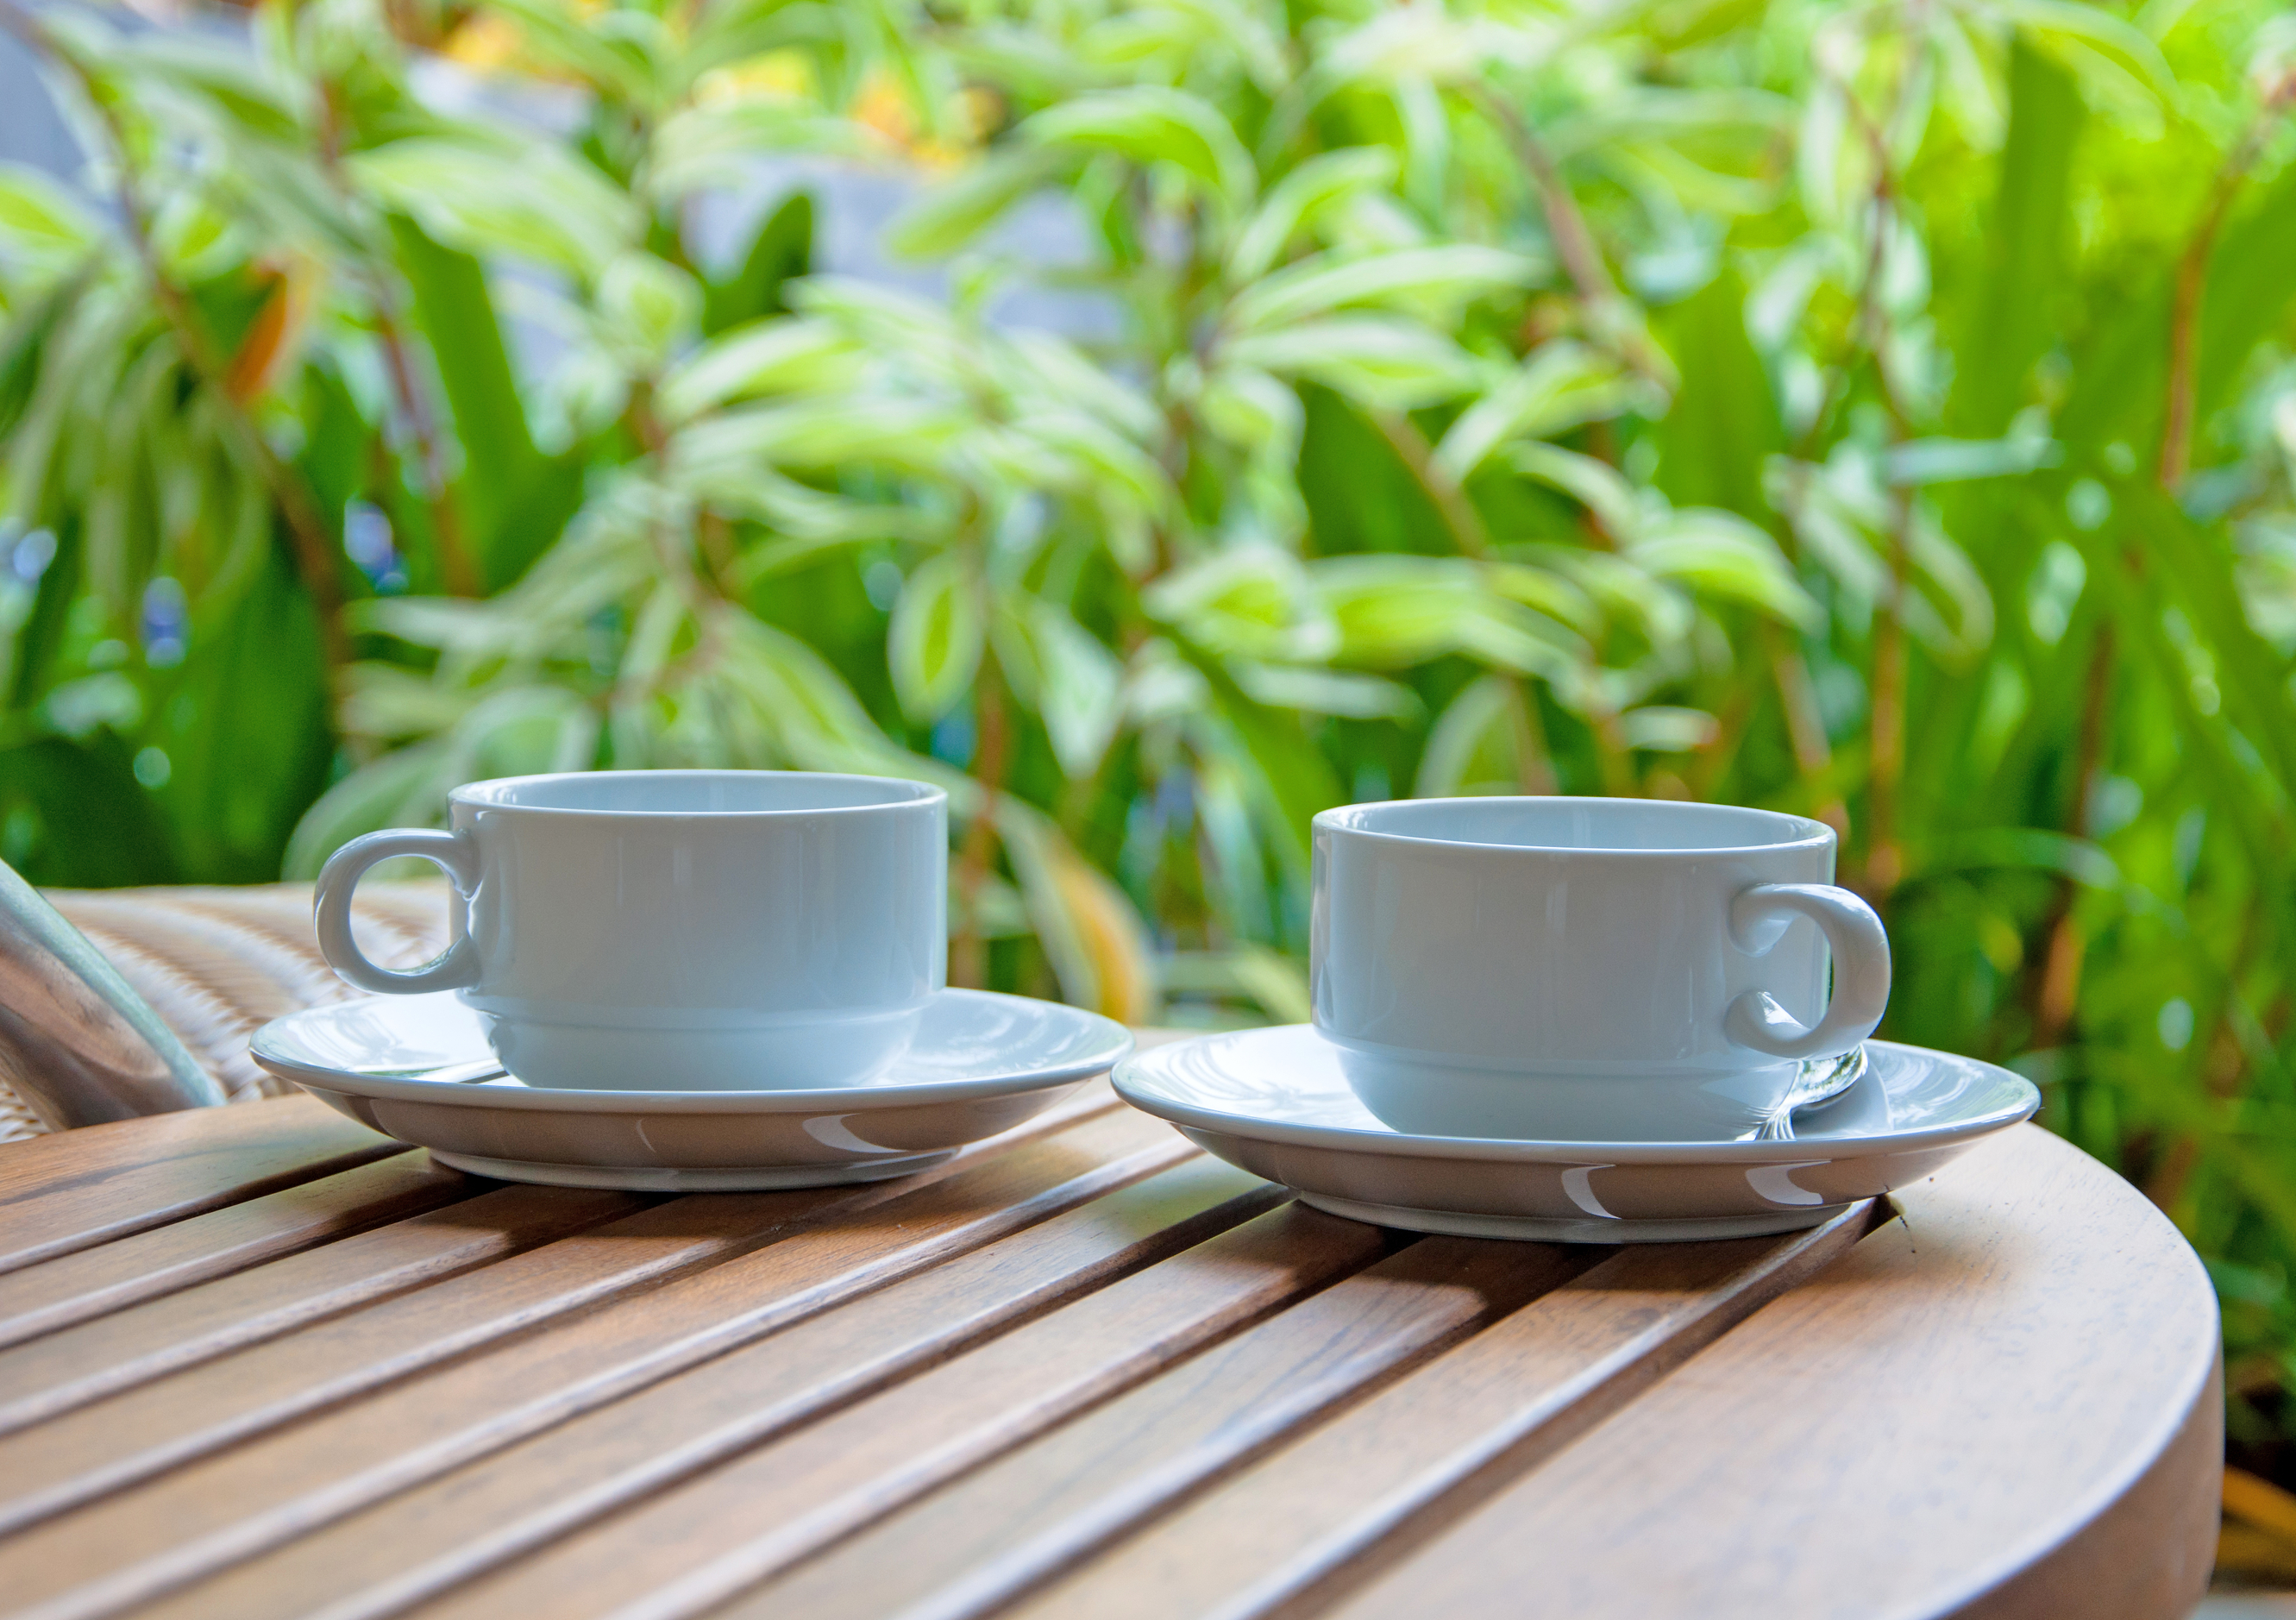 Two Coffee Cups on the table with nature background